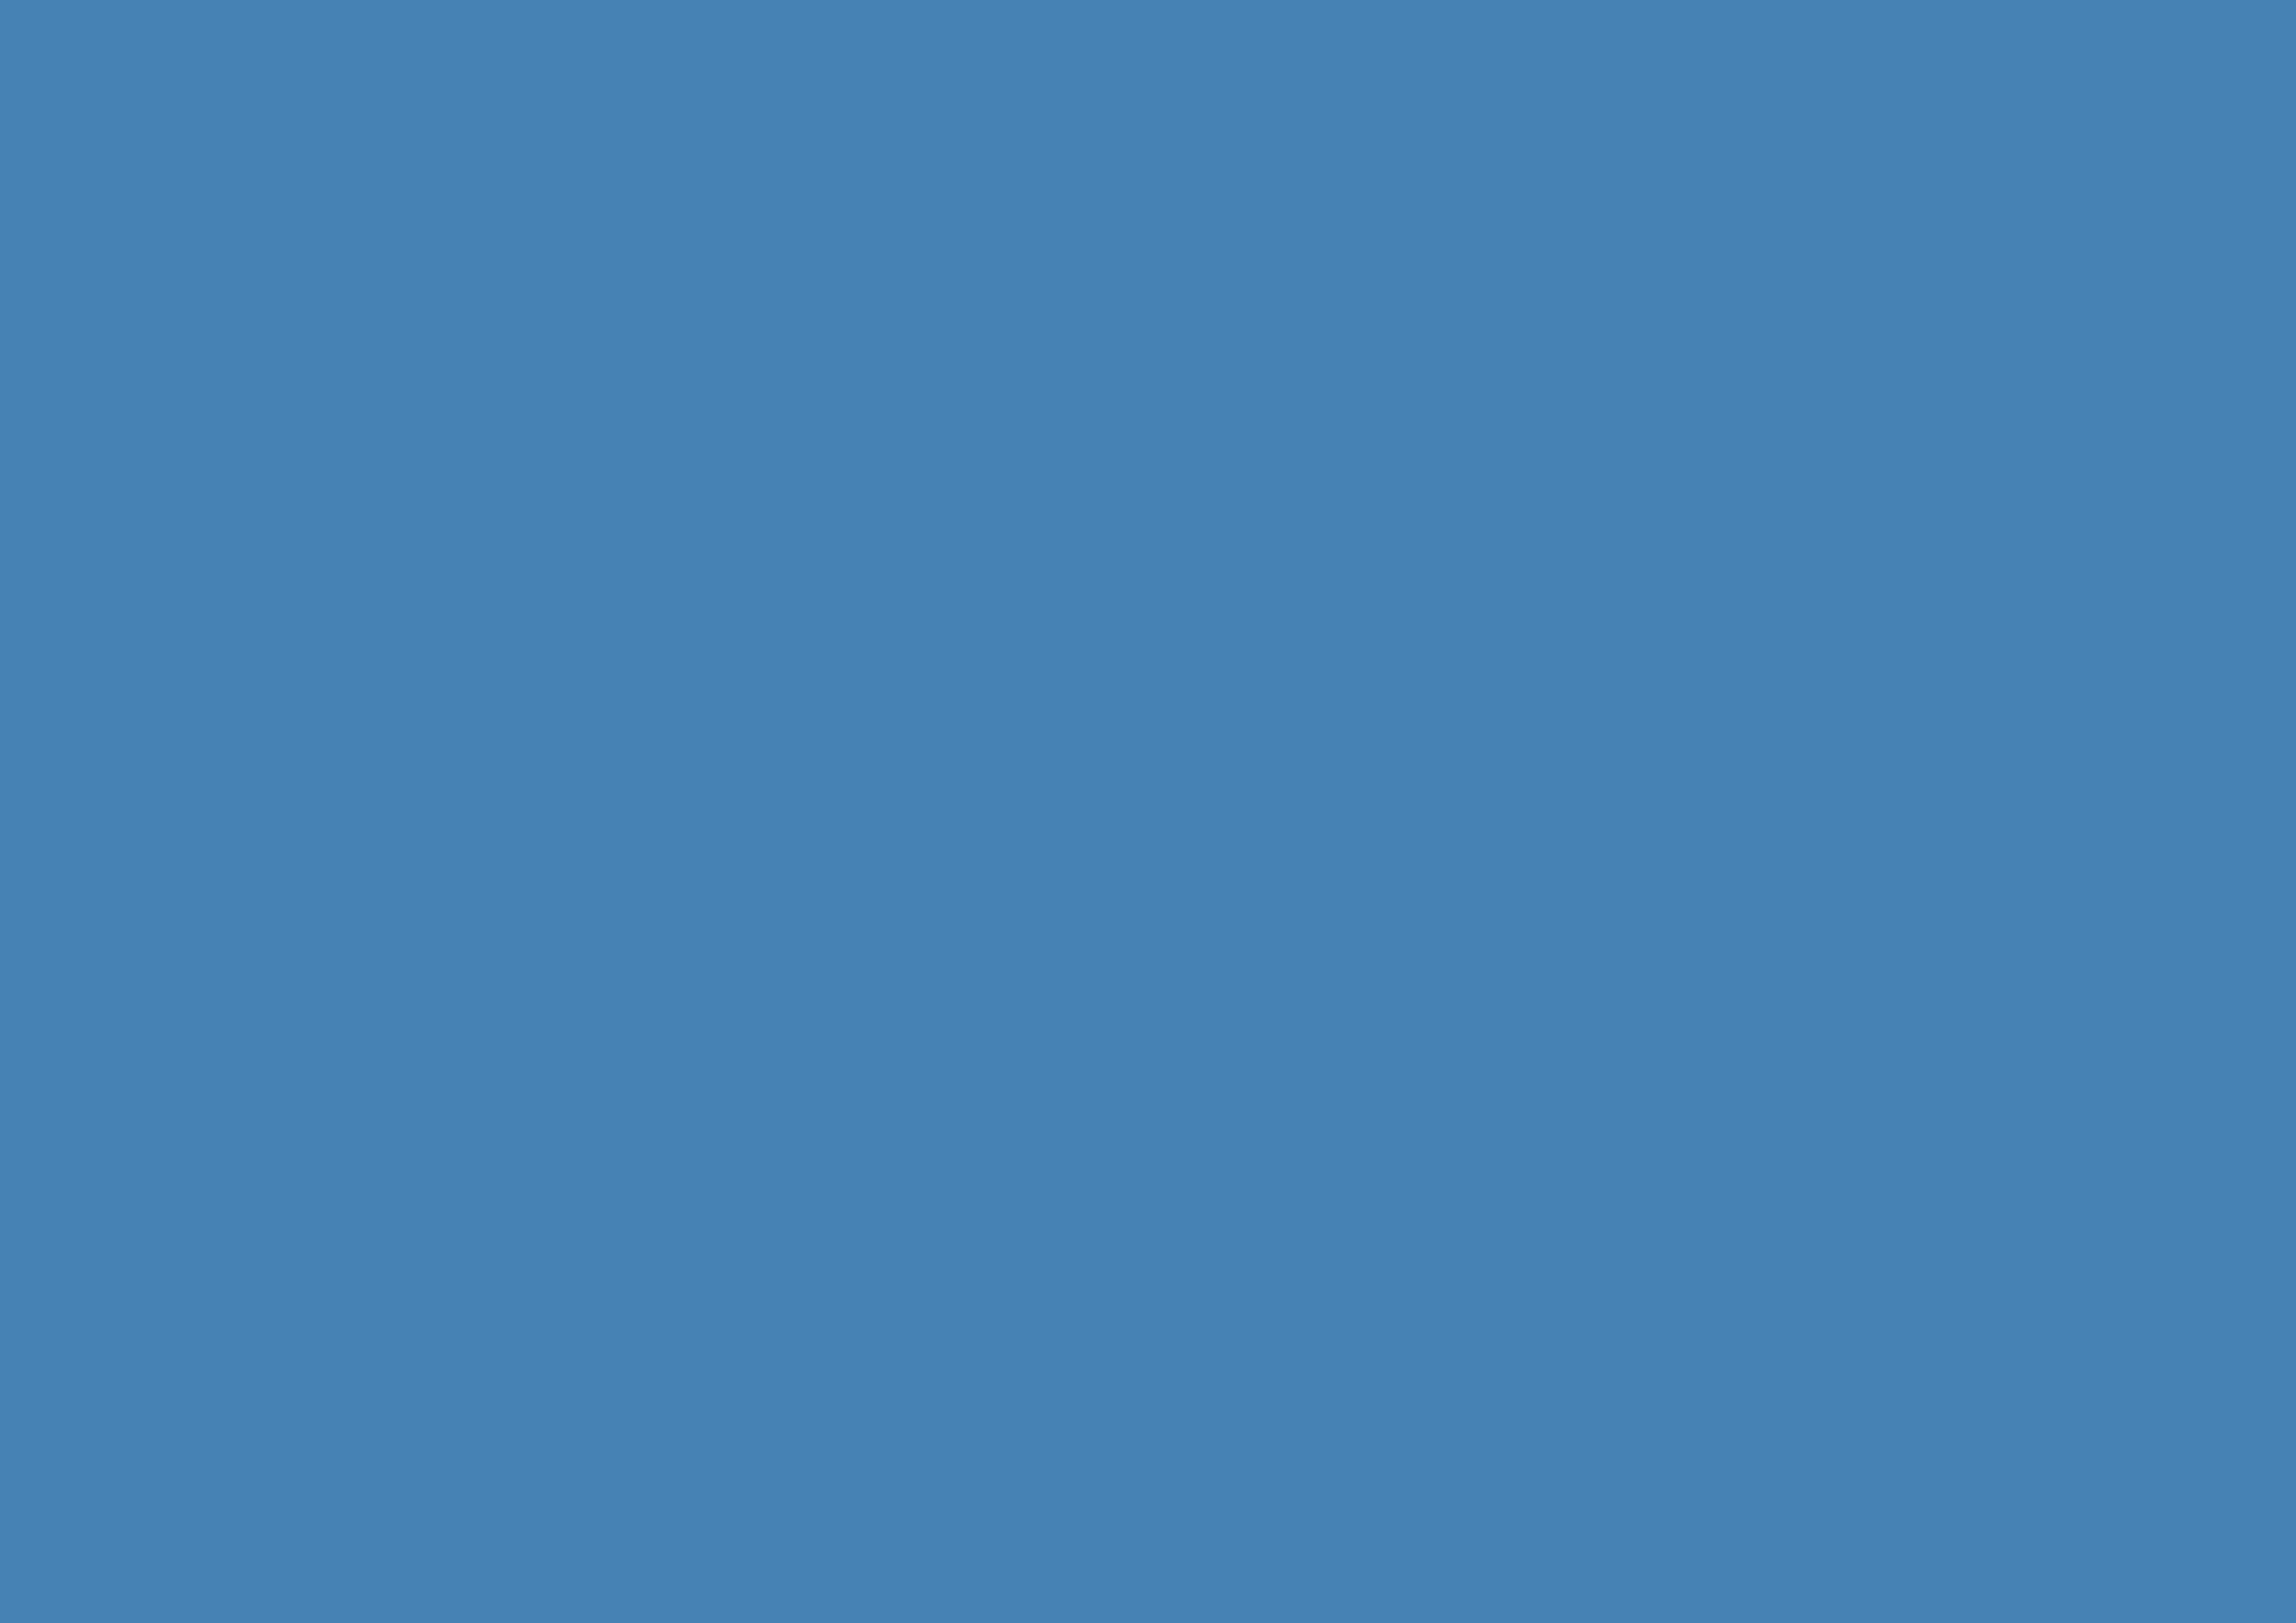 3508x2480 Steel Blue Solid Color Background